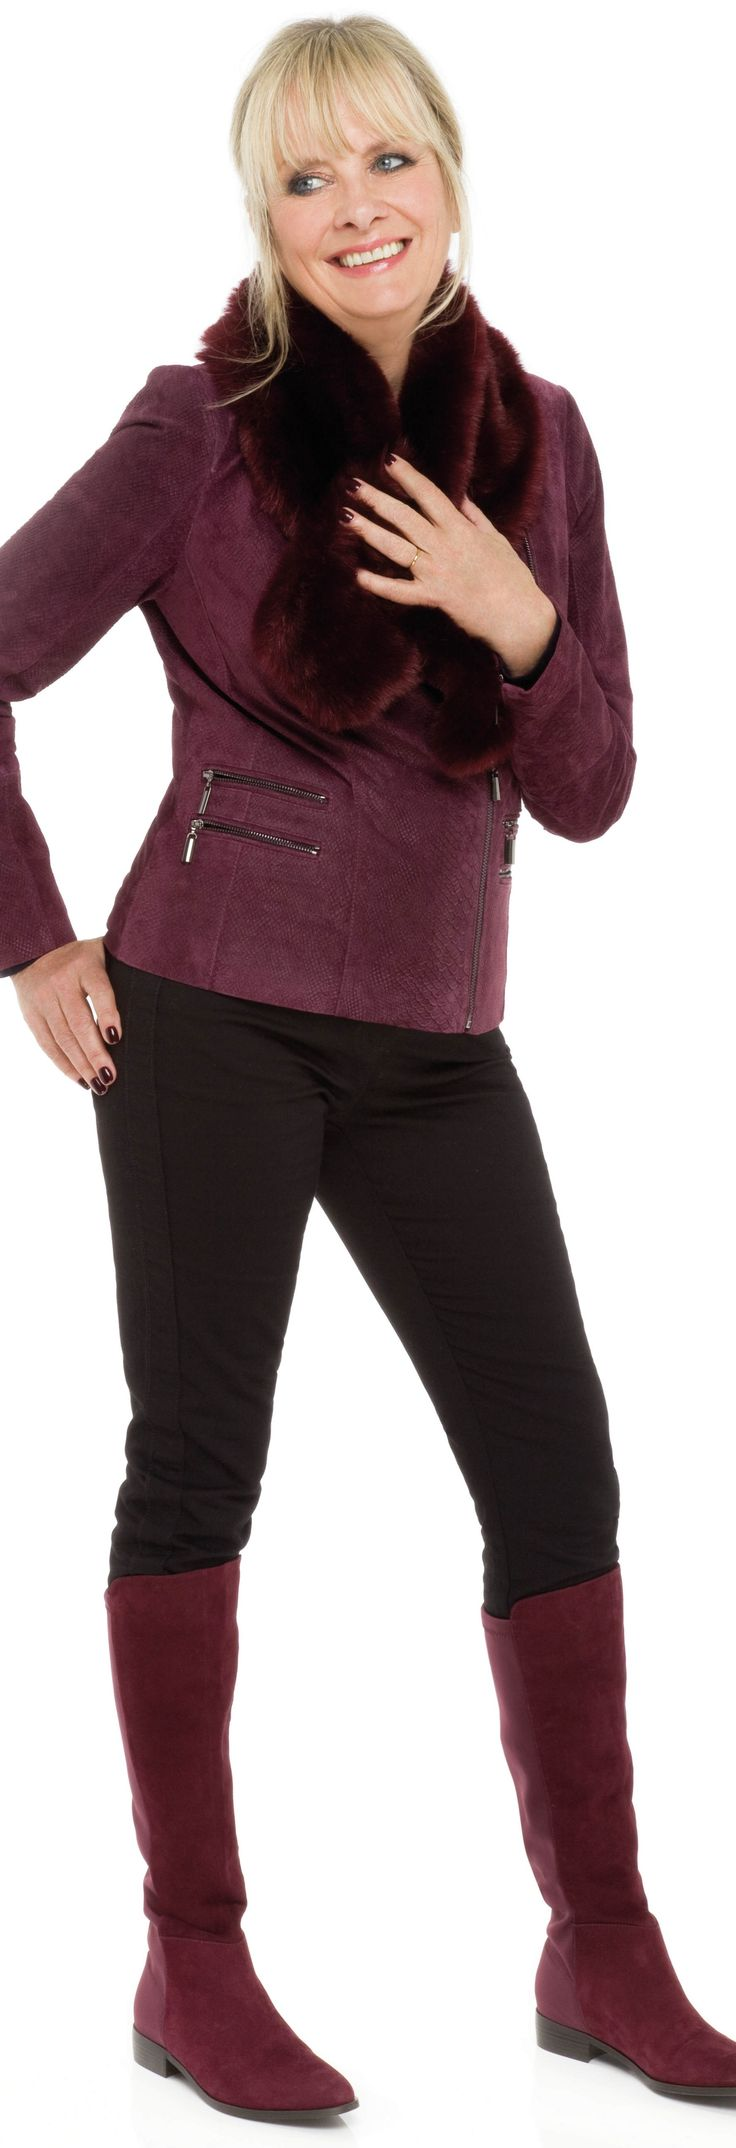 Should women over 60 wear short jackets with leggings? I'm sorry Twiggy... read my answer here: http://www.boomerinas.com/2015/09/18/27-fashion-tips-we-can-learn-from-twiggy-now/